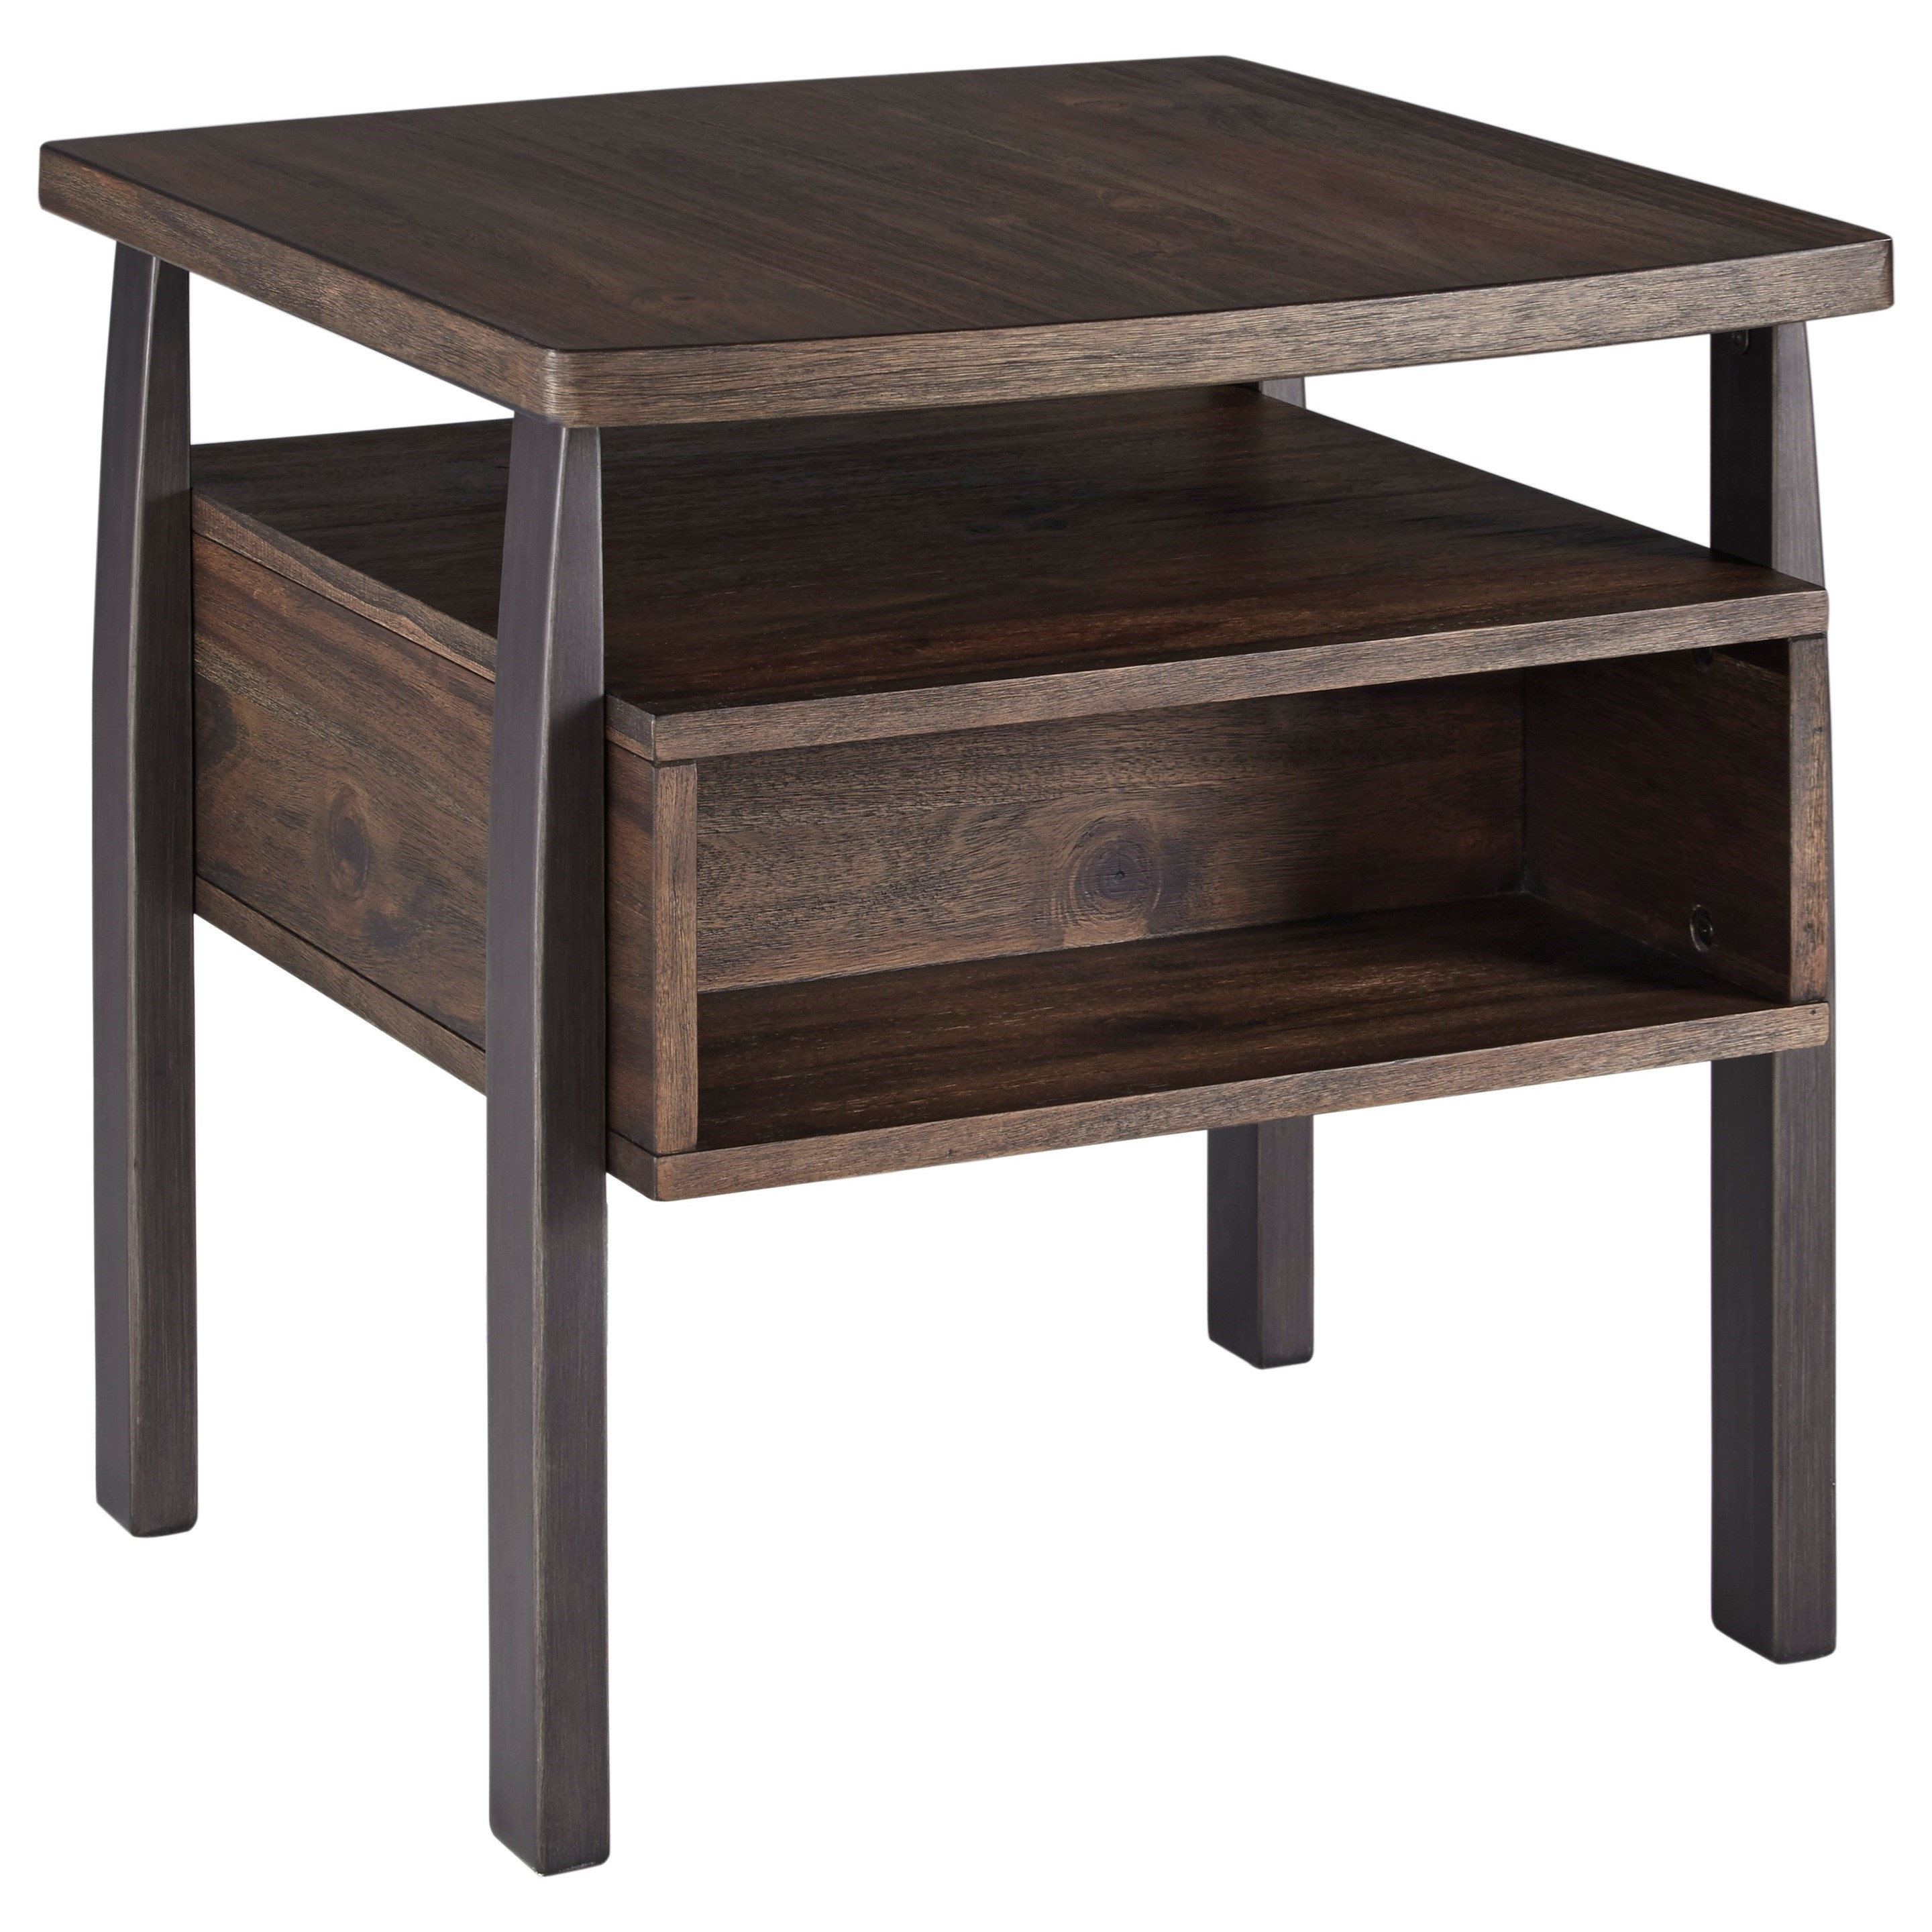 Vailbry End Table by Signature Design by Ashley at Red Knot